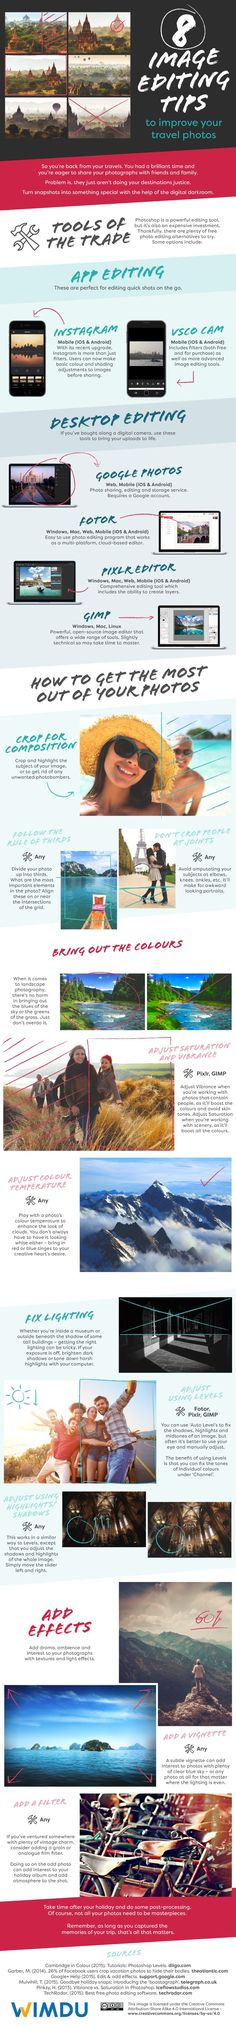 8 Image Editing Tips to Improve Your Travel Photos  [by Wimdu -- via #tipsographic]. More at tipsographic.com